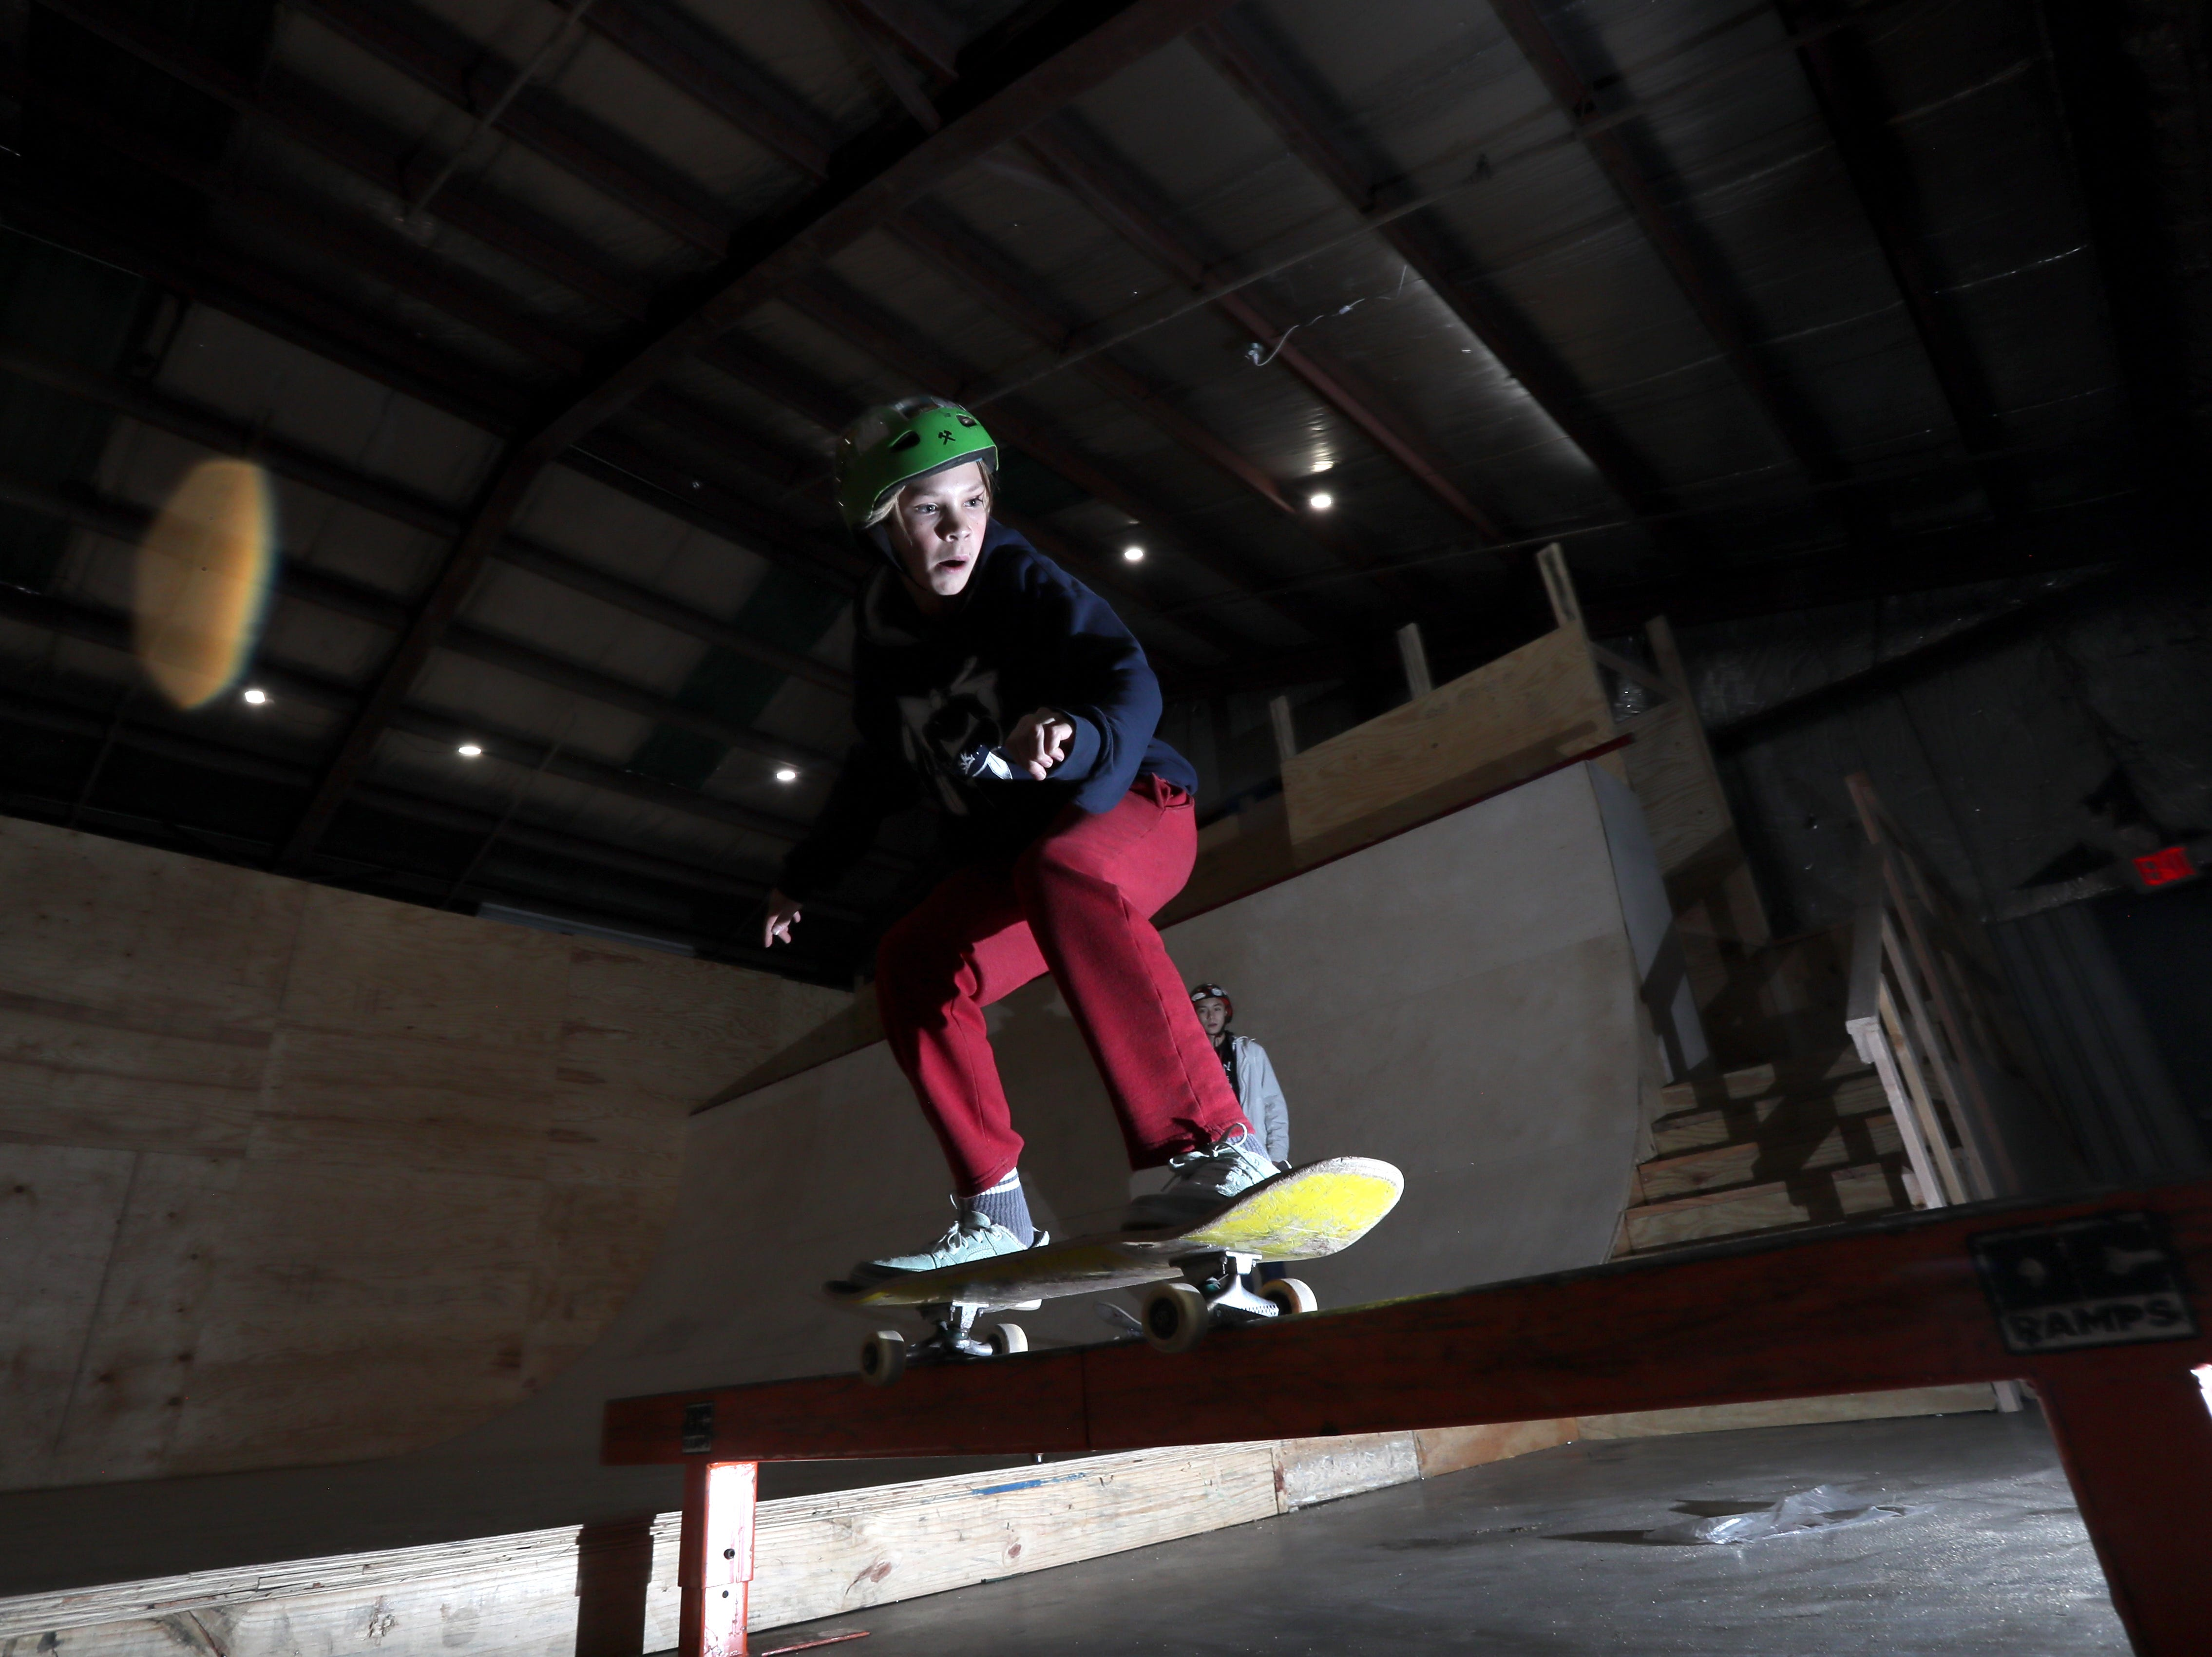 Doran Shafer, 13 rides inside Society Skatepark, a joint venture with Contact Skateboard Shop in the Broad Avenue Arts District which held its soft opening on Thursday, Dec. 20, 2018.